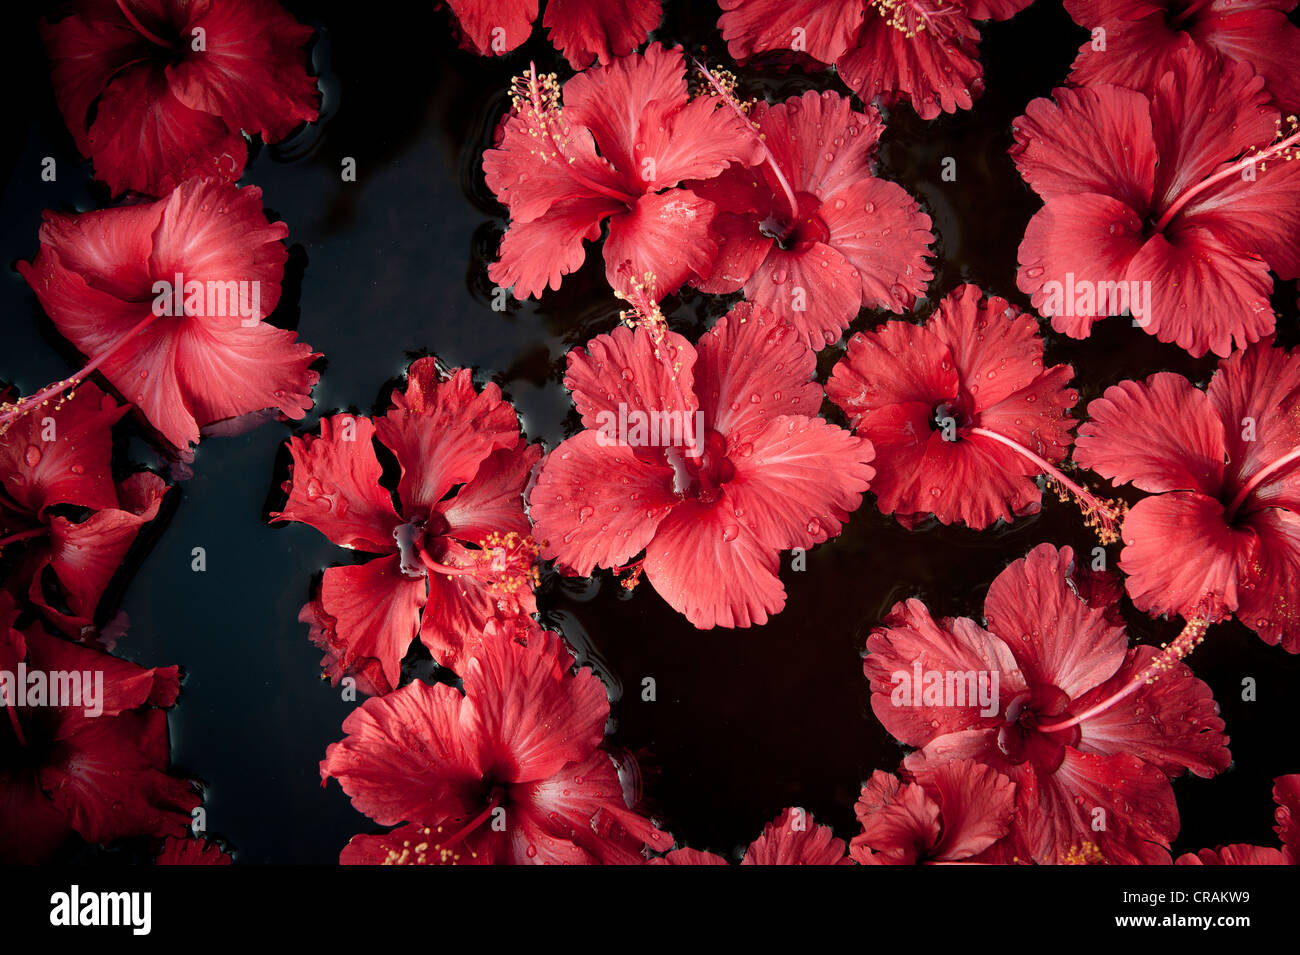 Indian hibiscus flowers stock photos indian hibiscus flowers stock hibiscus hibiscus flowers floating on water decorations purity hotel malabar escapes izmirmasajfo